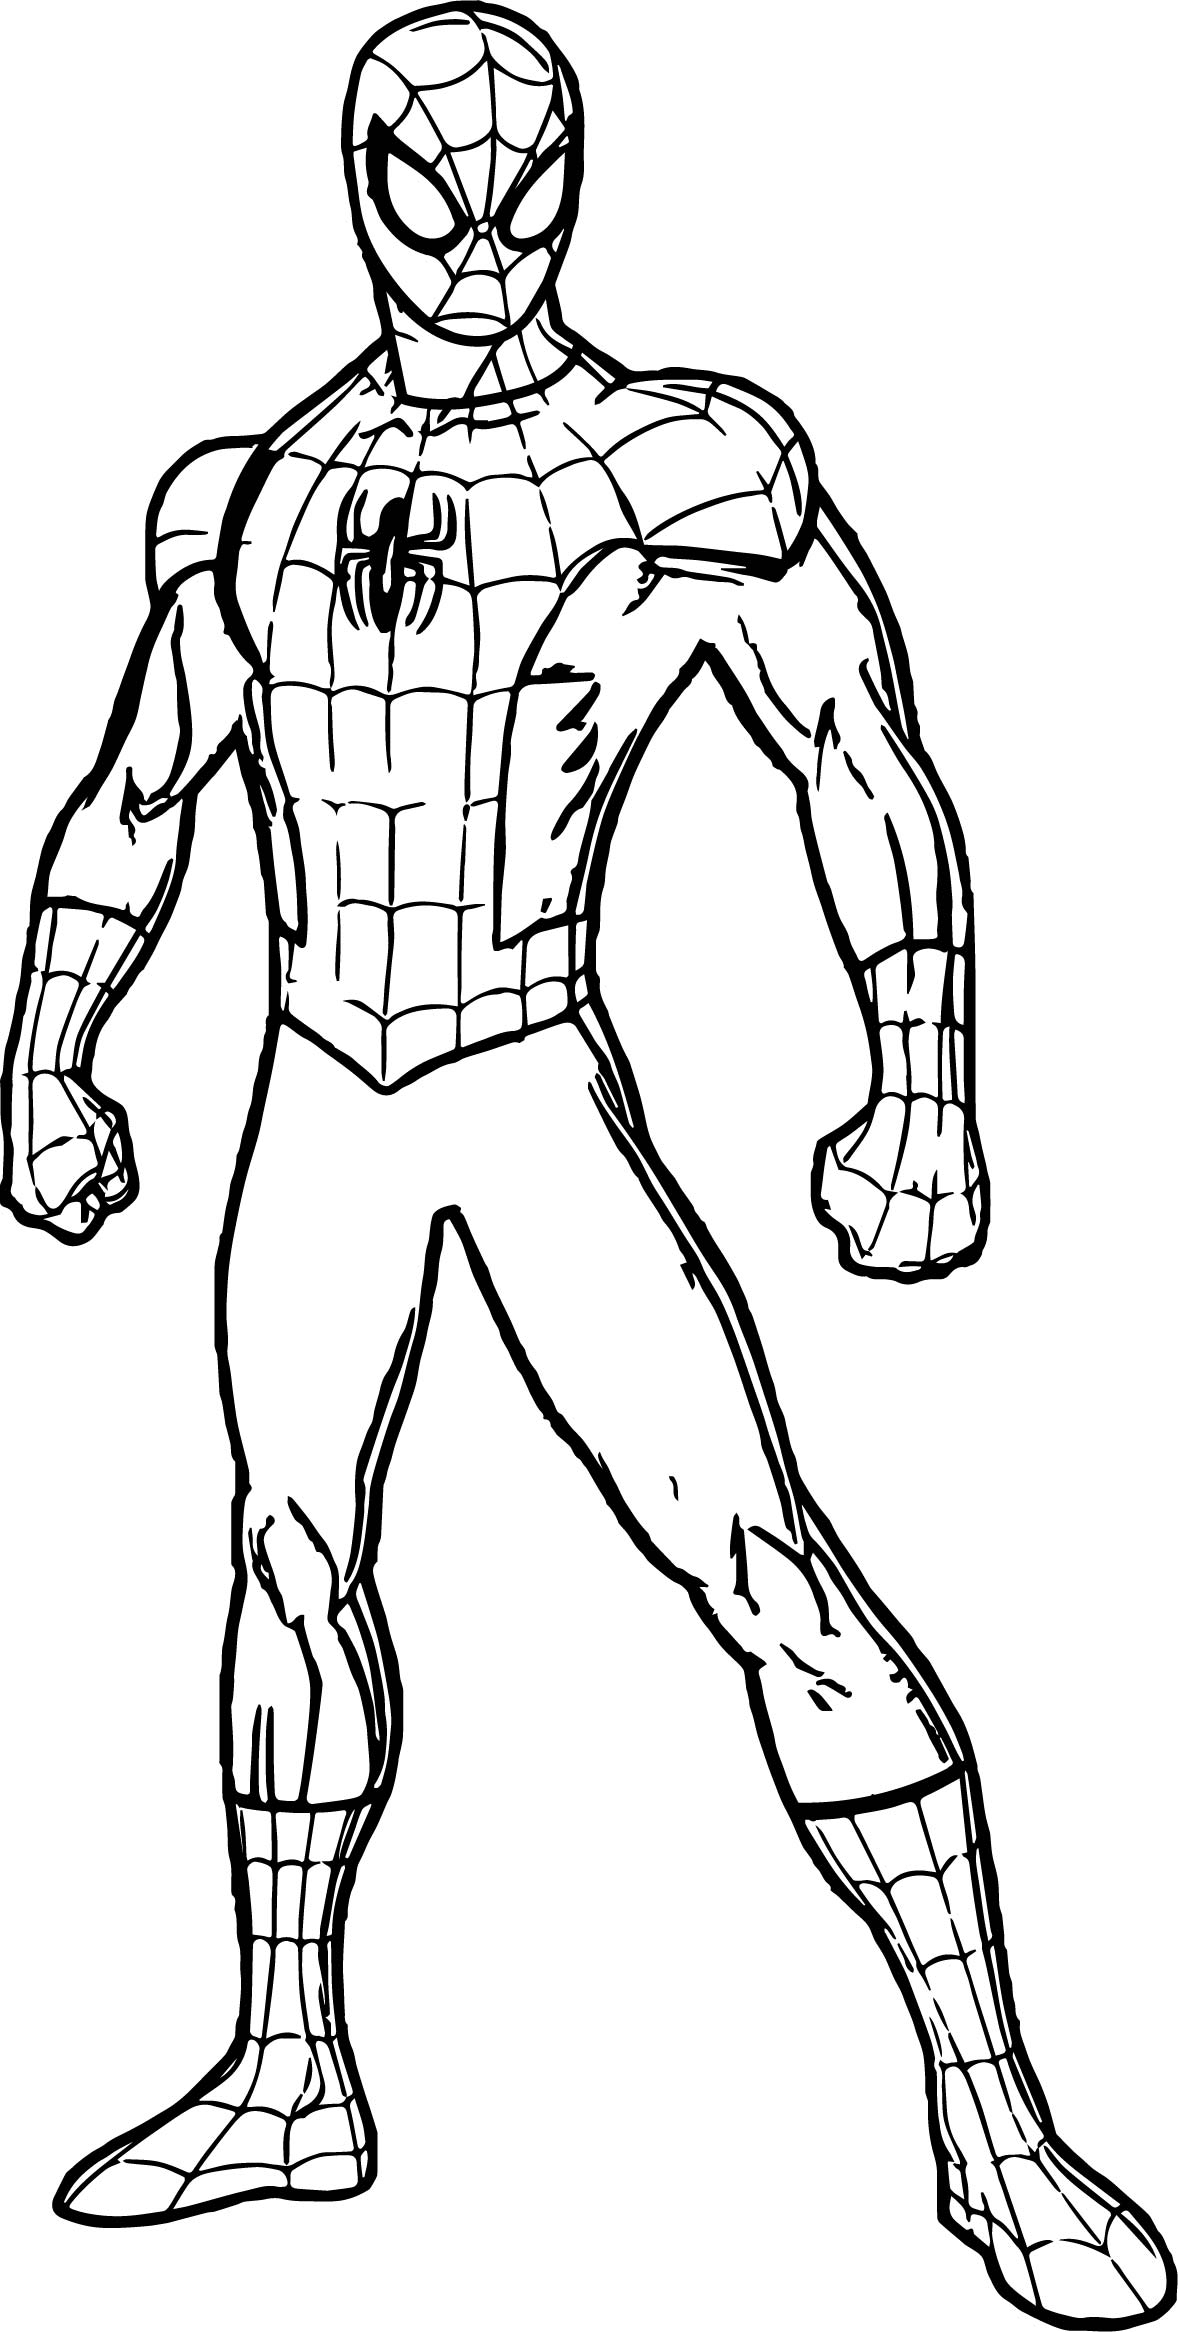 printable spiderman coloring pages 17 best images about nia on pinterest princess coloring pages spiderman coloring printable